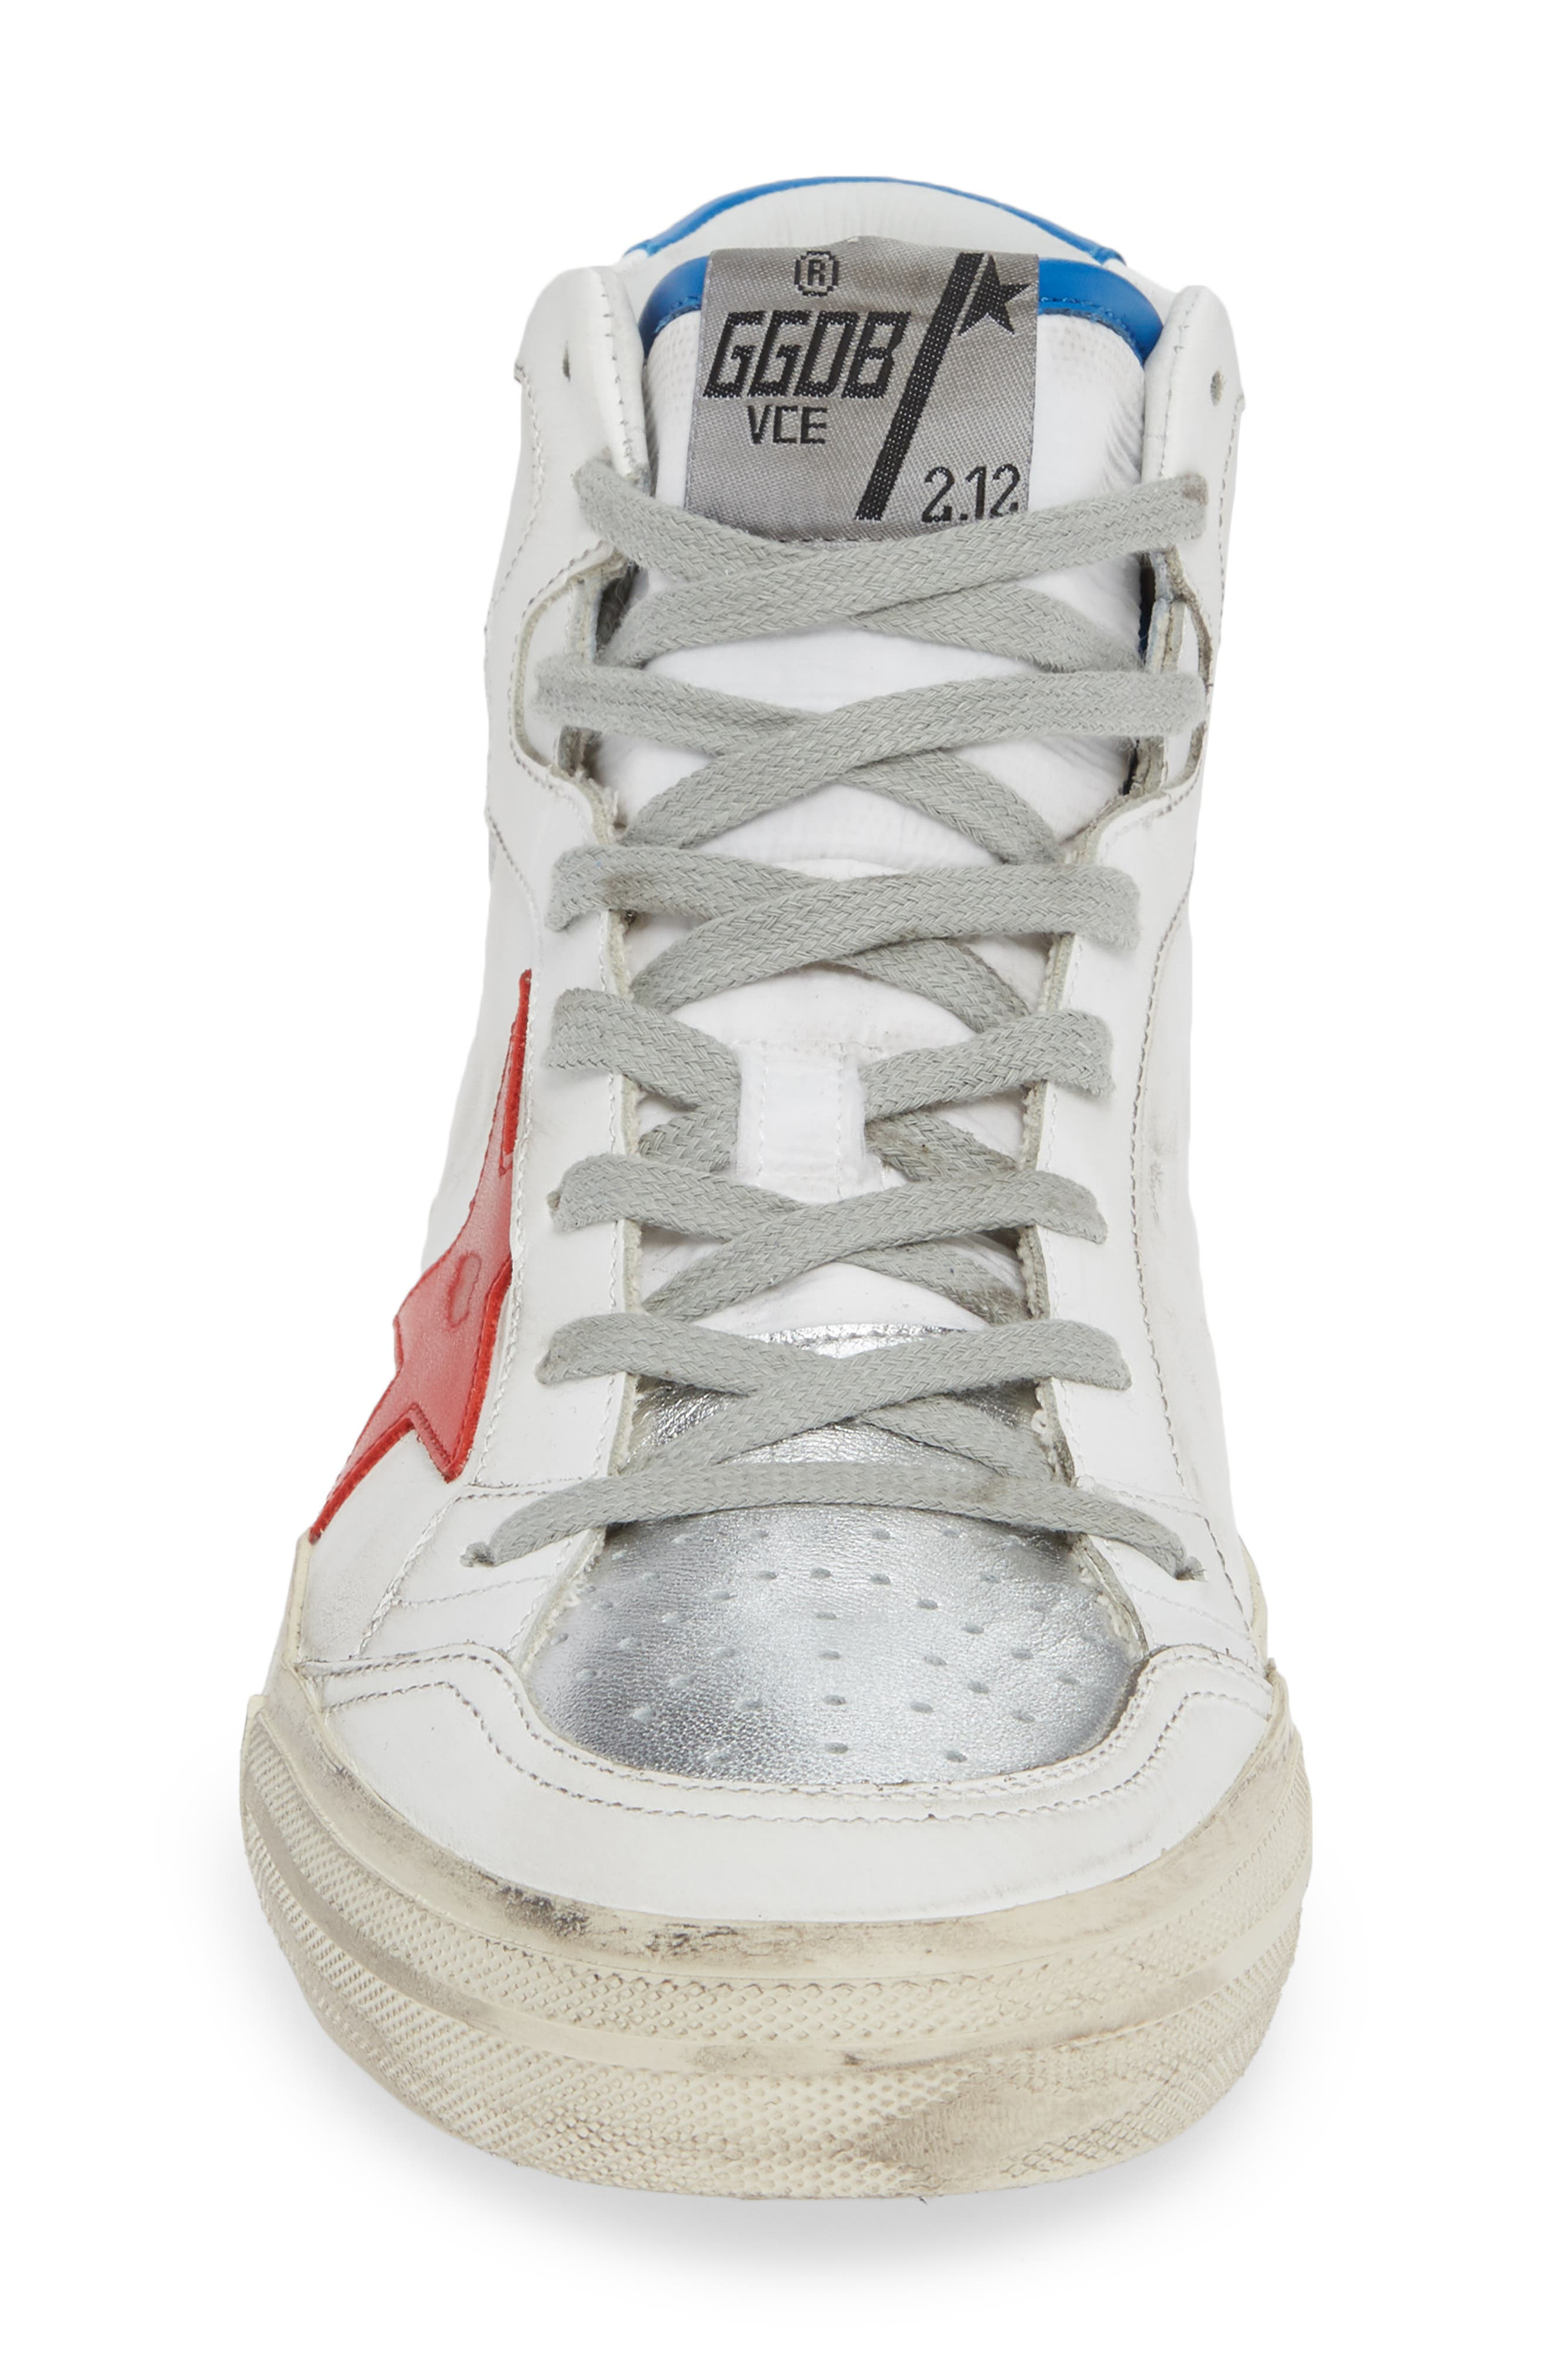 2.12 Star High Top Sneaker,                             Alternate thumbnail 4, color,                             WHITE LEATHER- RED STAR